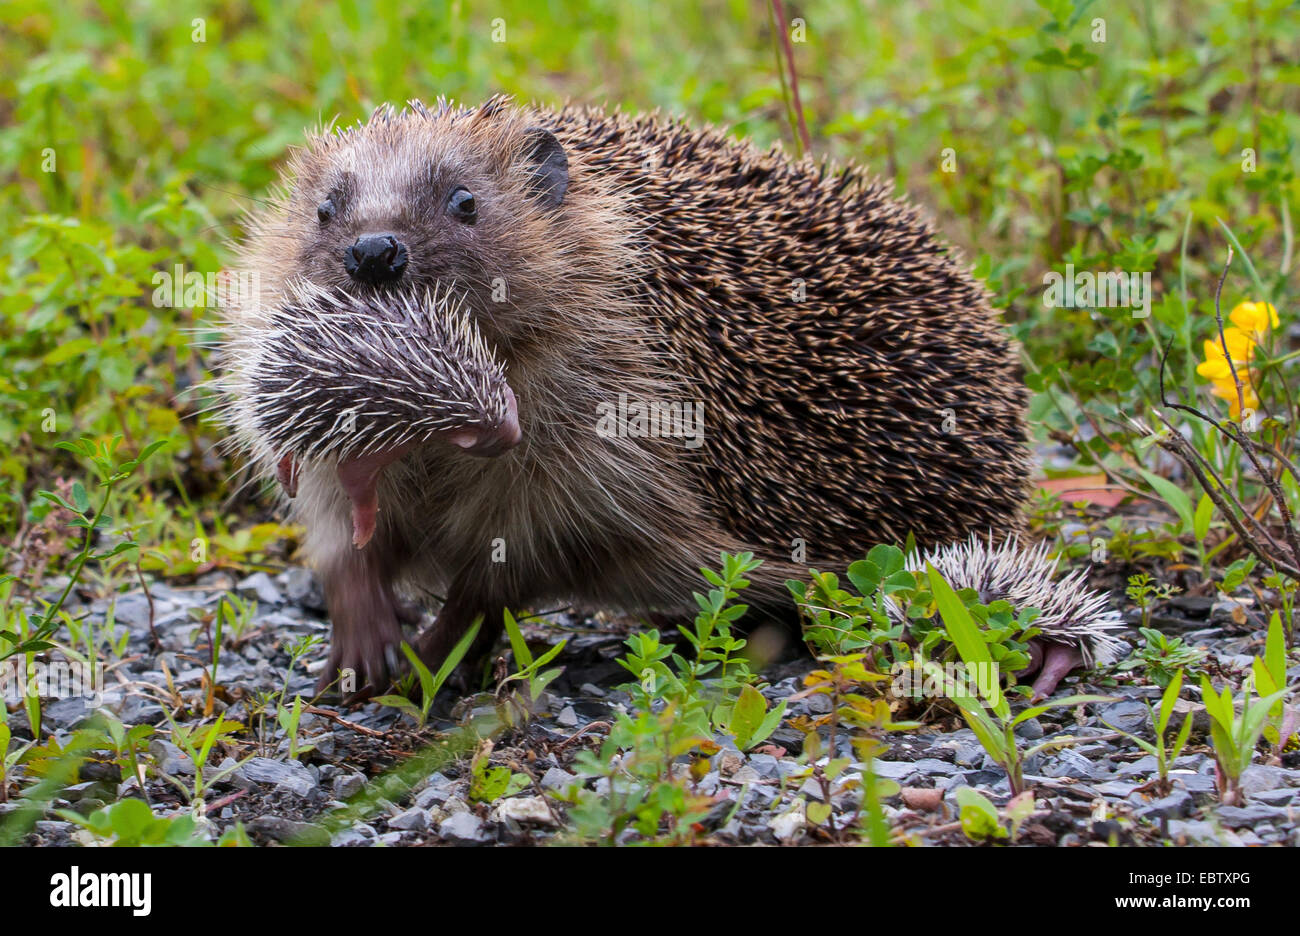 Western hedgehog, European hedgehog (Erinaceus europaeus), mother hedgehog carrying its infant in its mouth, Switzerland, - Stock Image